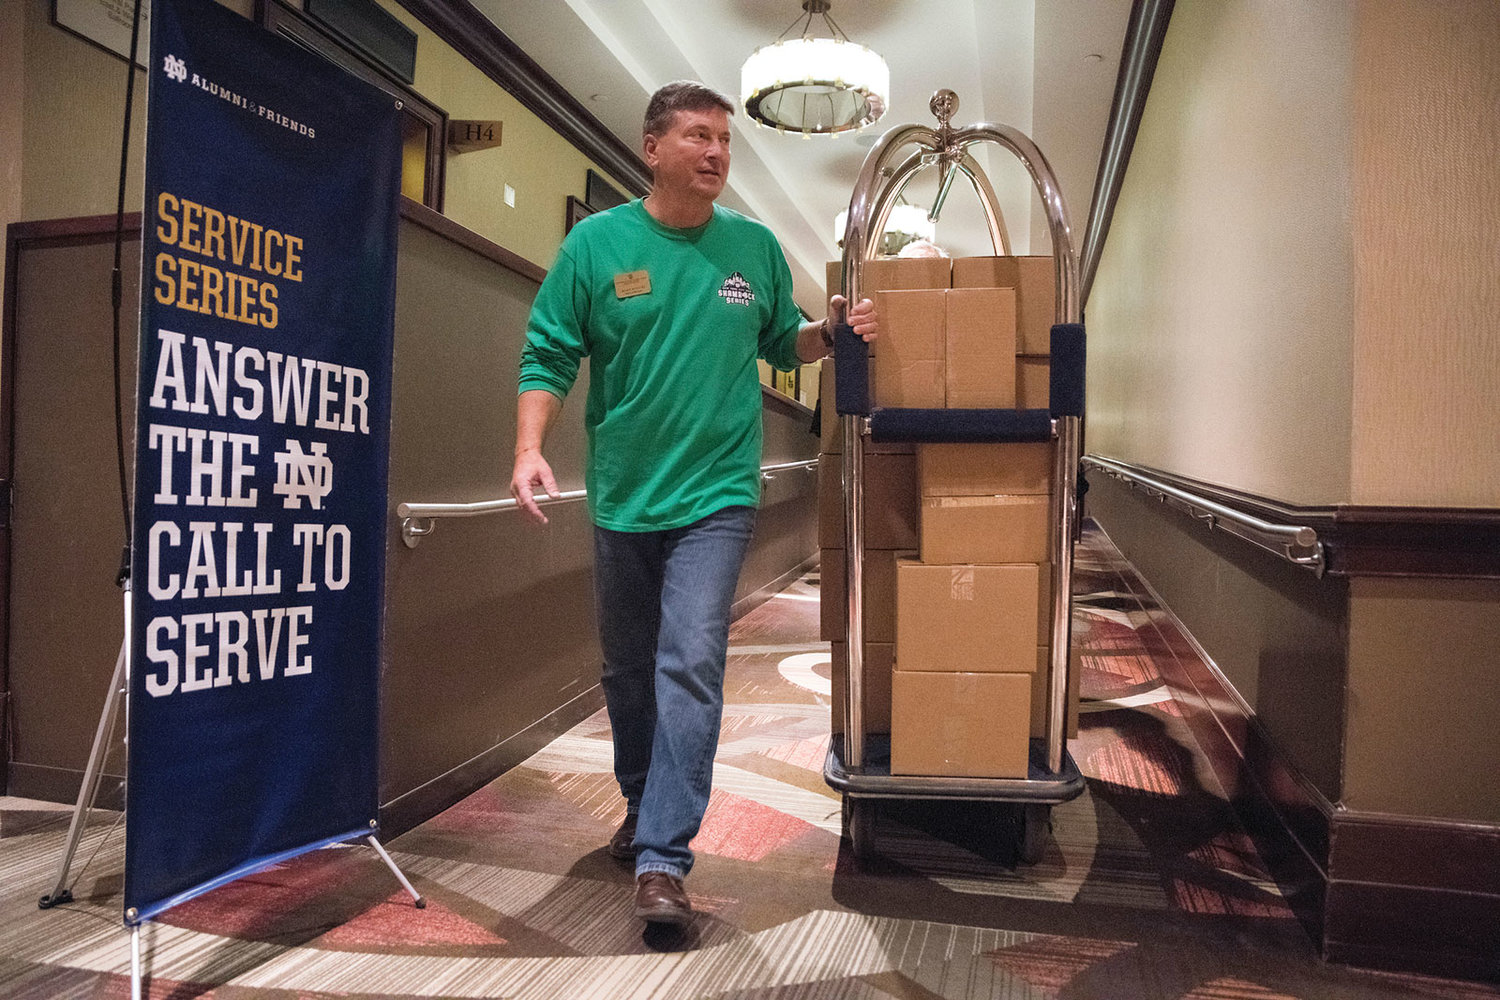 Mark Witucki, business manager of the Notre Dame Alumni Association, pulls a cart with Thanksgiving meal boxes at the Sheraton New York in Manhattan Nov. 16. Notre Dame alumni and friends packed the Thanksgiving meal boxes as part of the association's service project during a visit to New York.